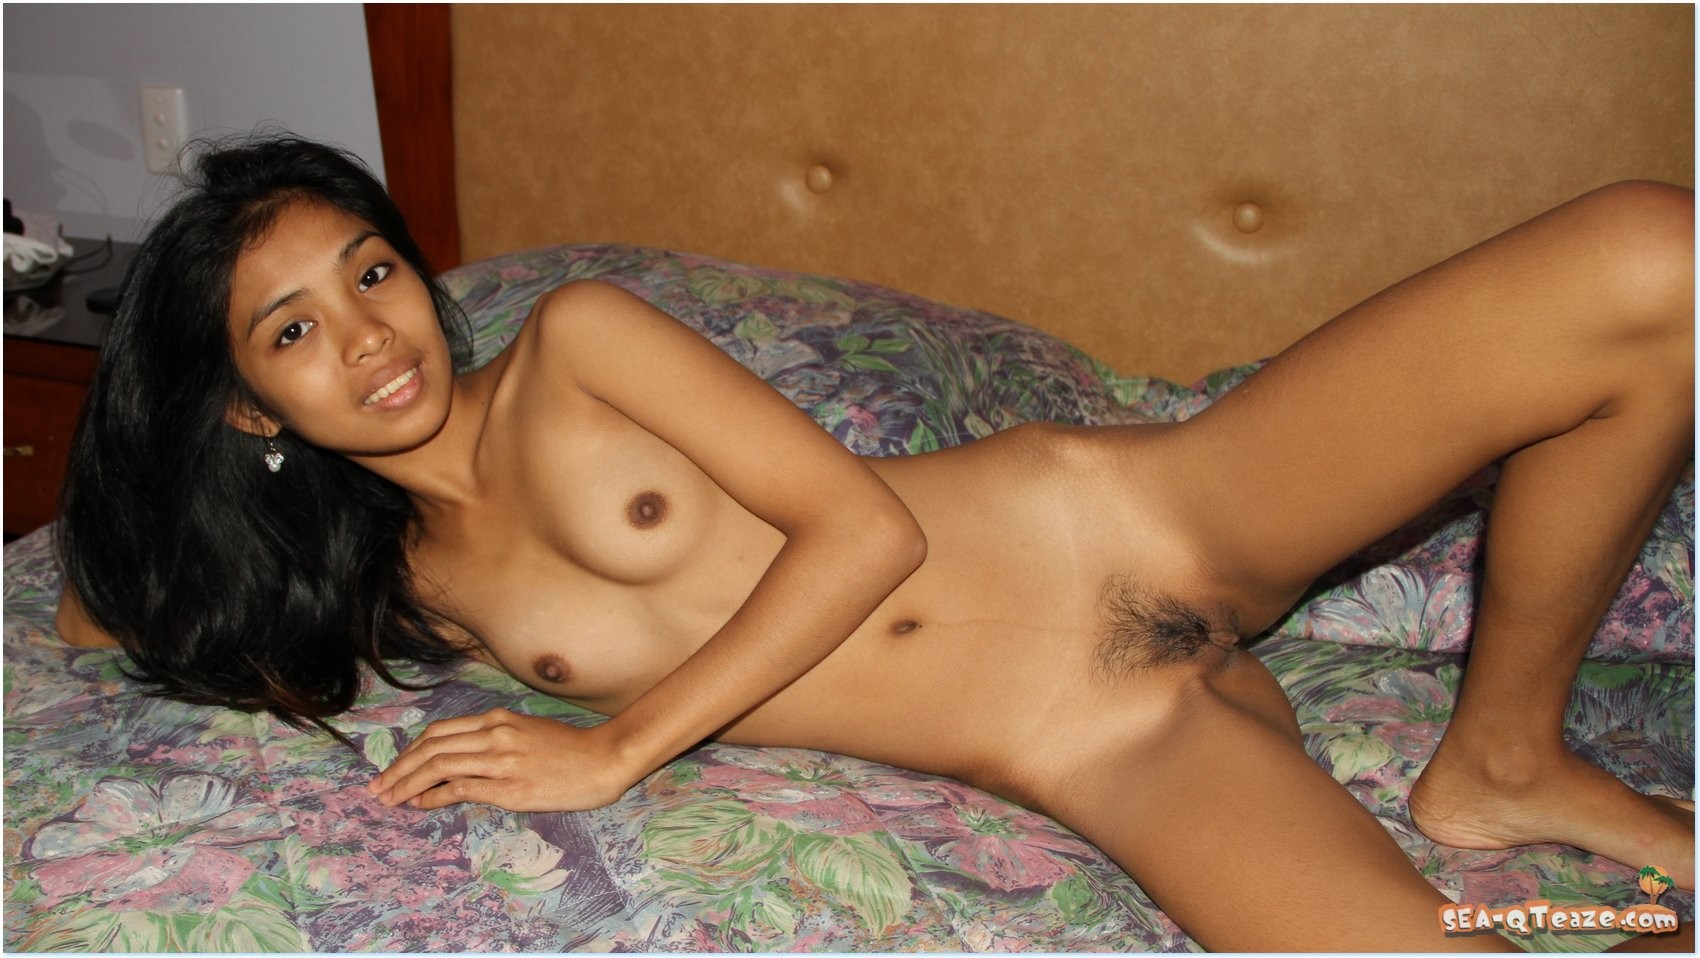 pinay-nude-girl-photo-free-vibrator-porn-vids